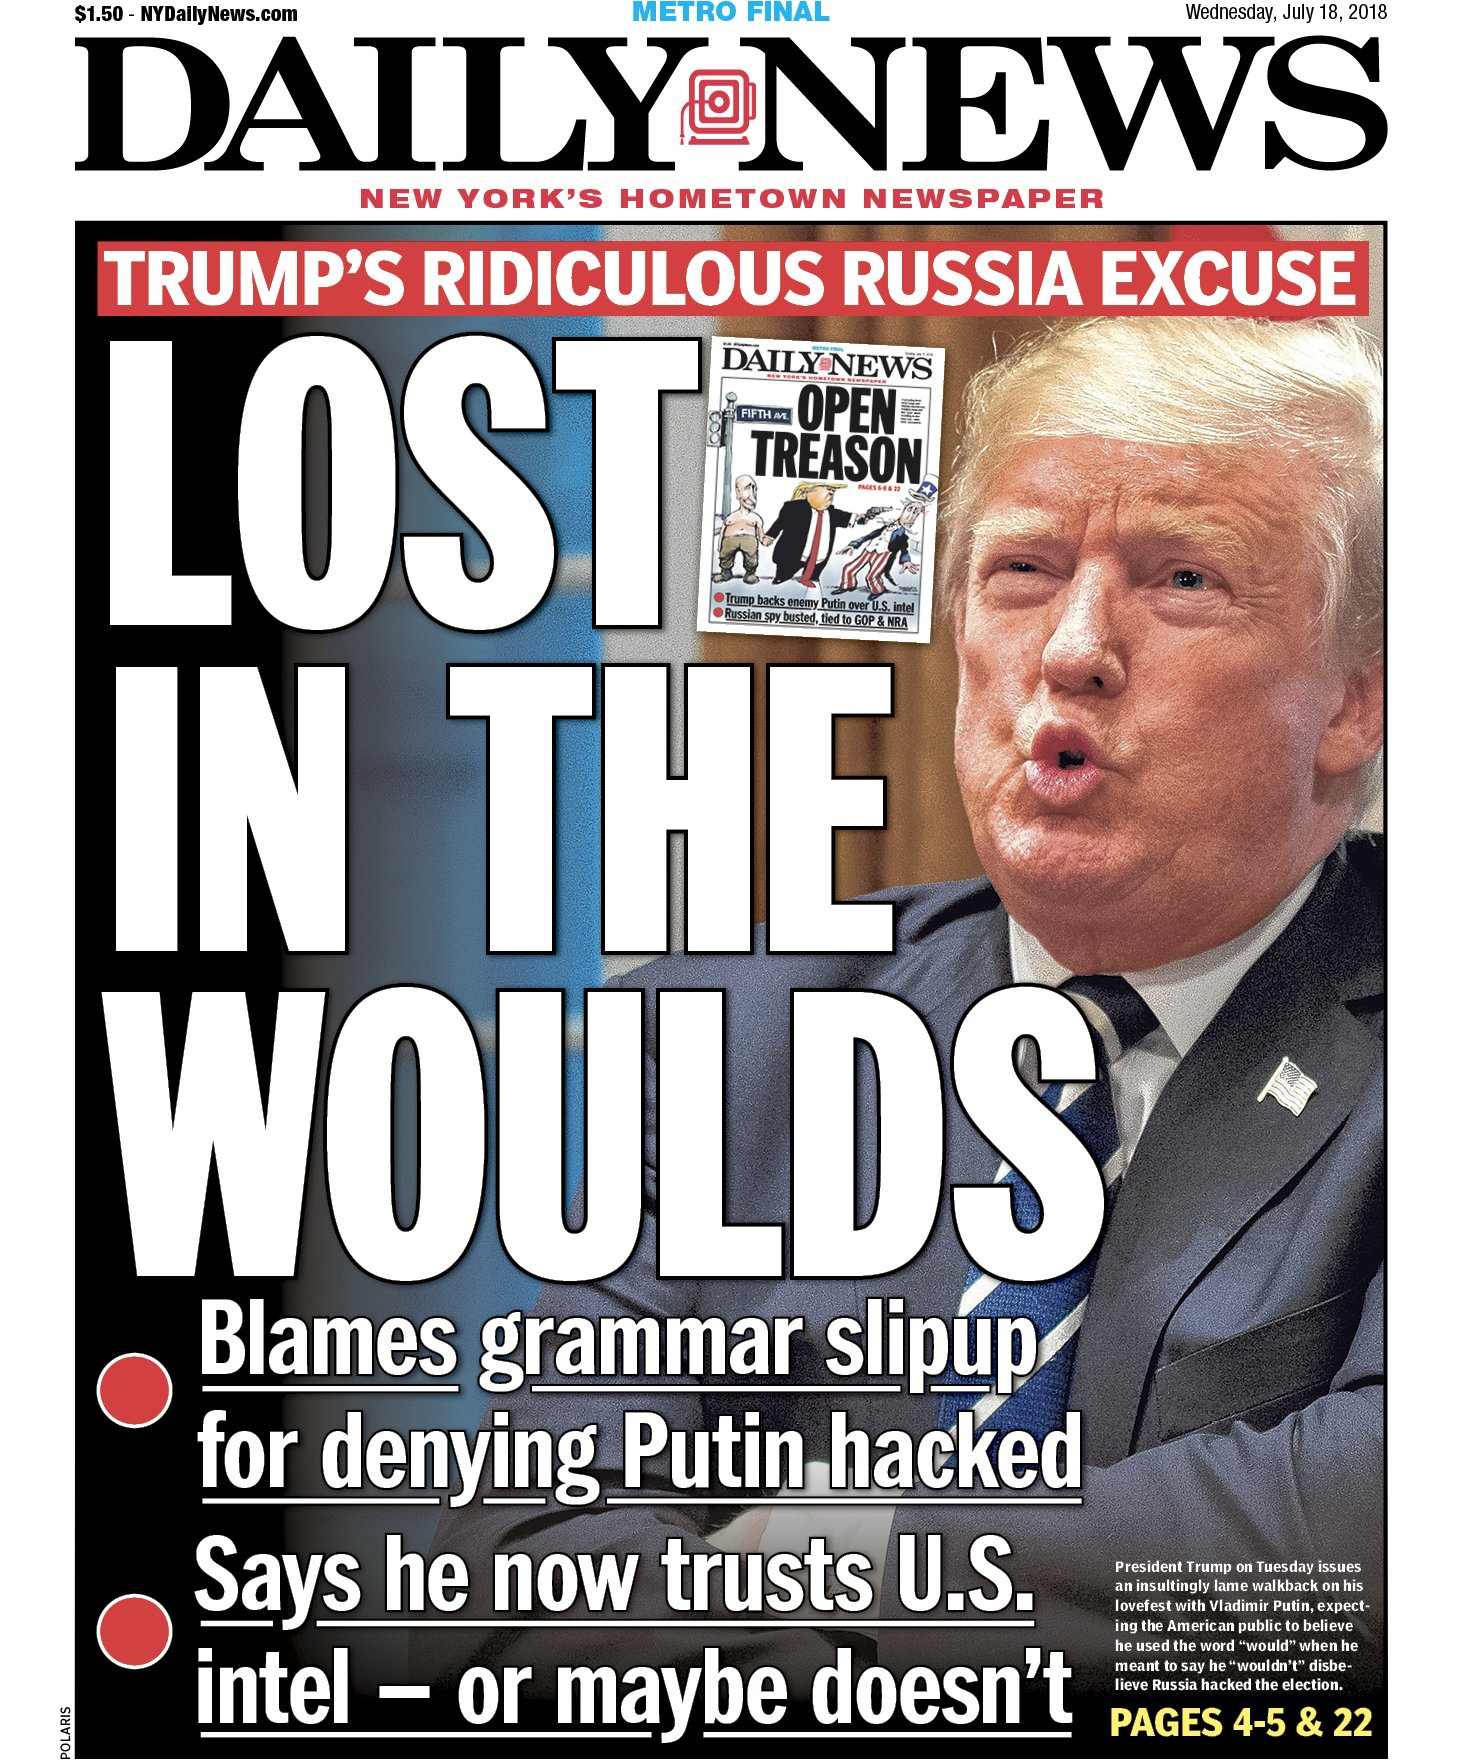 Wouldn't it be nice if he told the truth for once? https://t.co/Kjs498cCcH   An early look at Wednesday's front... https://t.co/KwGdlCHw5T